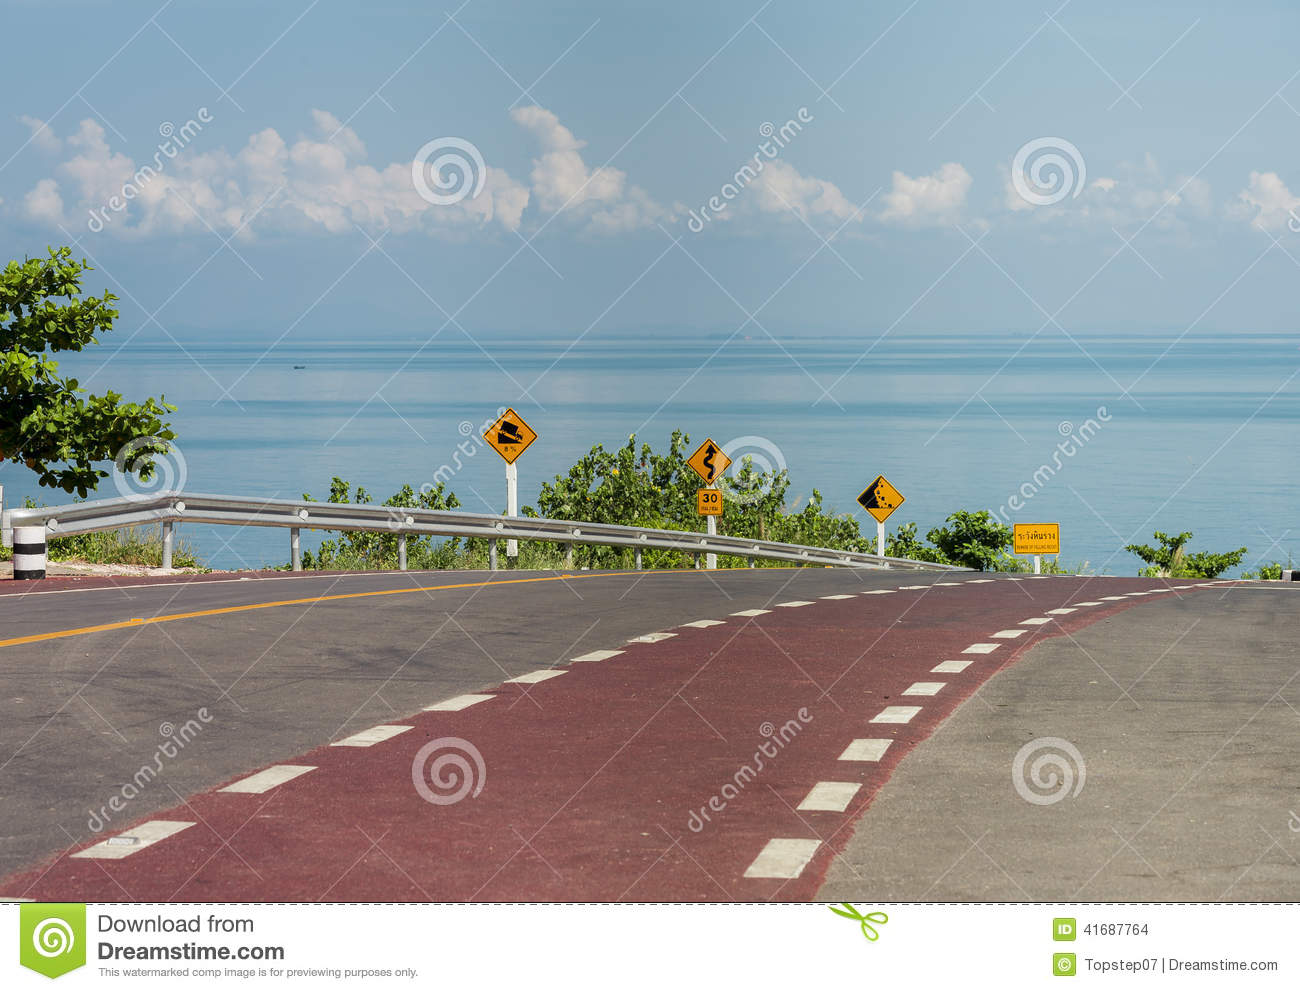 Bicycle lane on curve road along the beach with Traffic sign